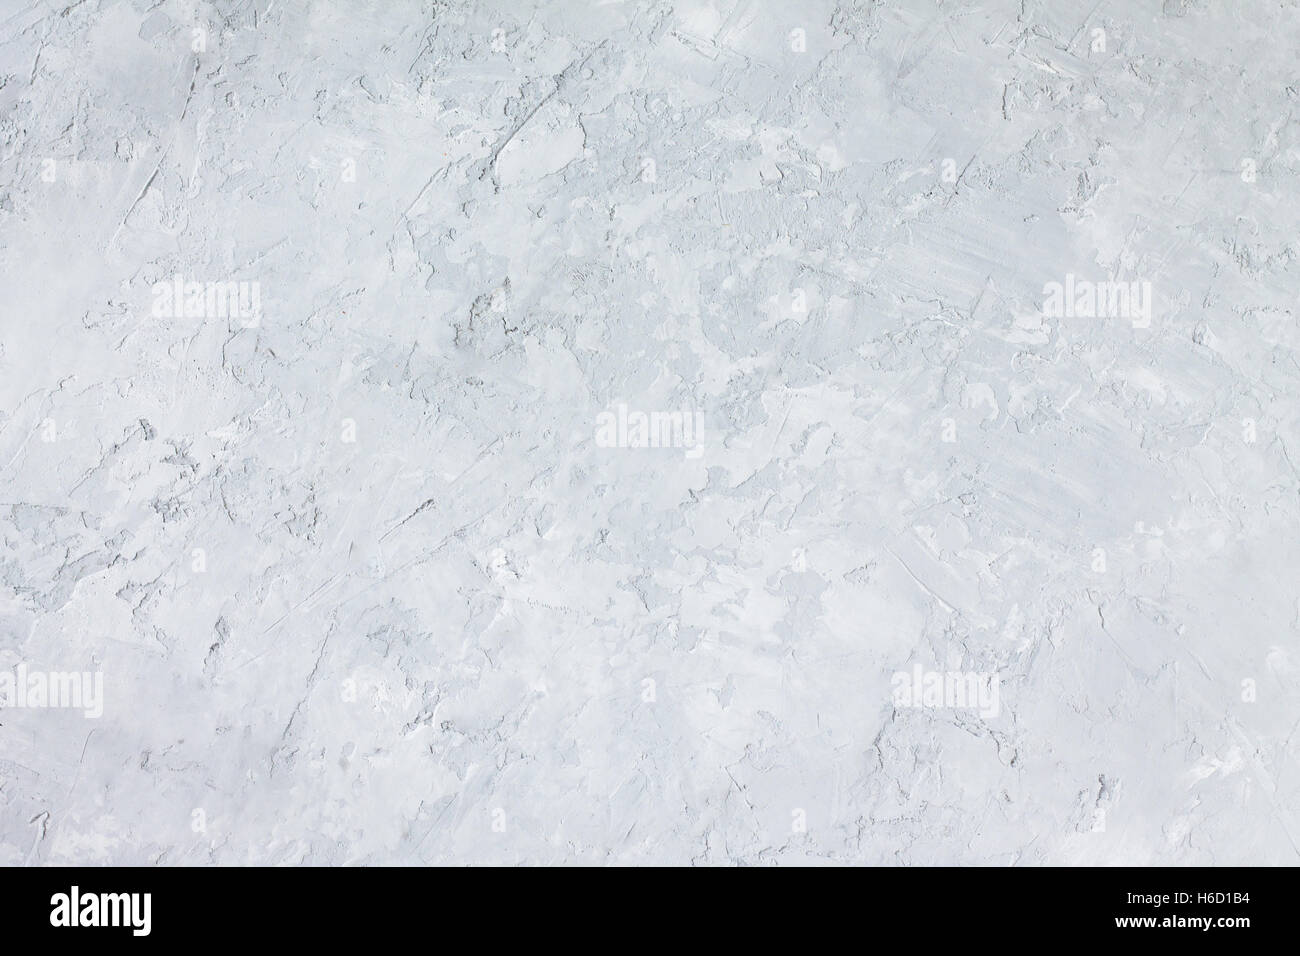 Obsolete gray stone background, concrete pattern high resolution. Top view, copy space. - Stock Image